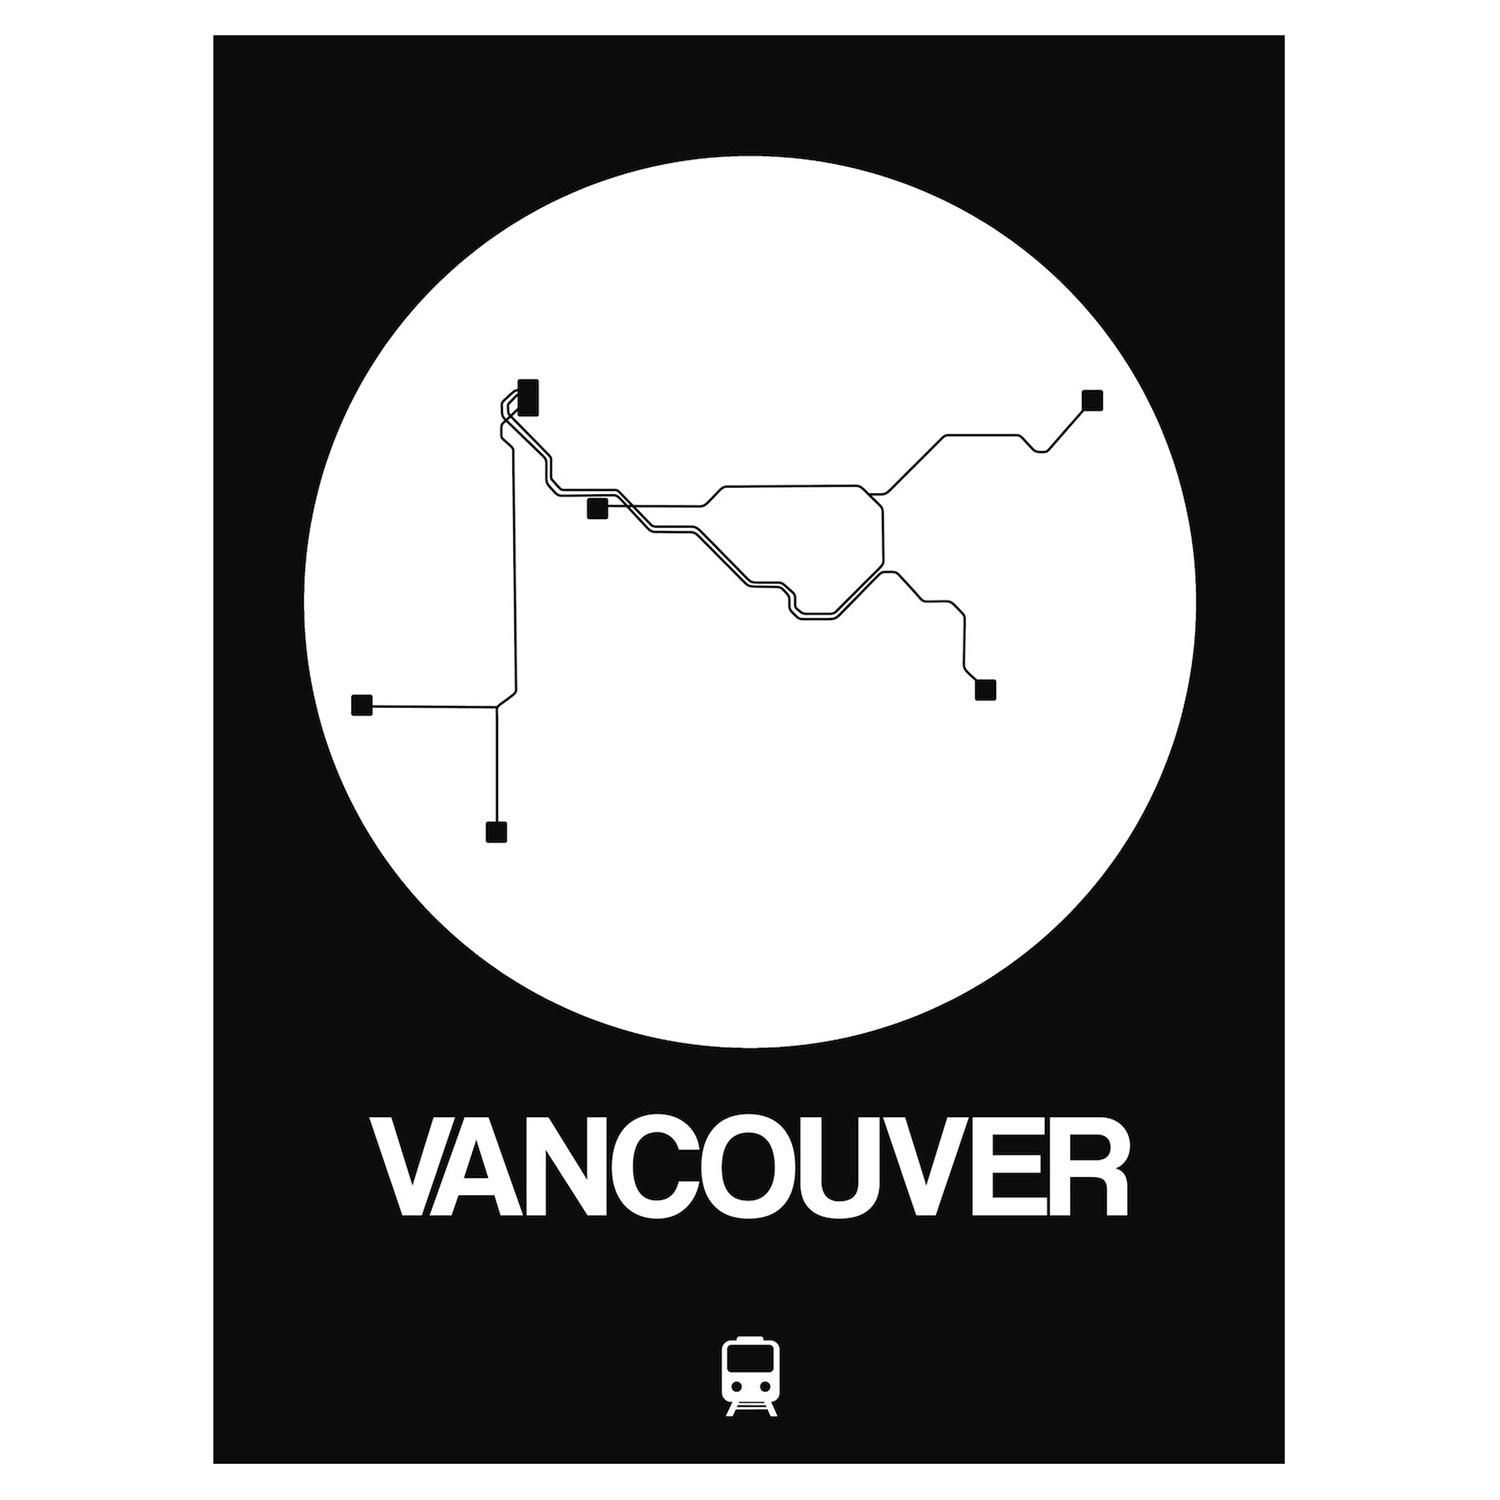 Vancouver Subway Map.Vancouver Subway Map Orange Subway City Maps Touch Of Modern